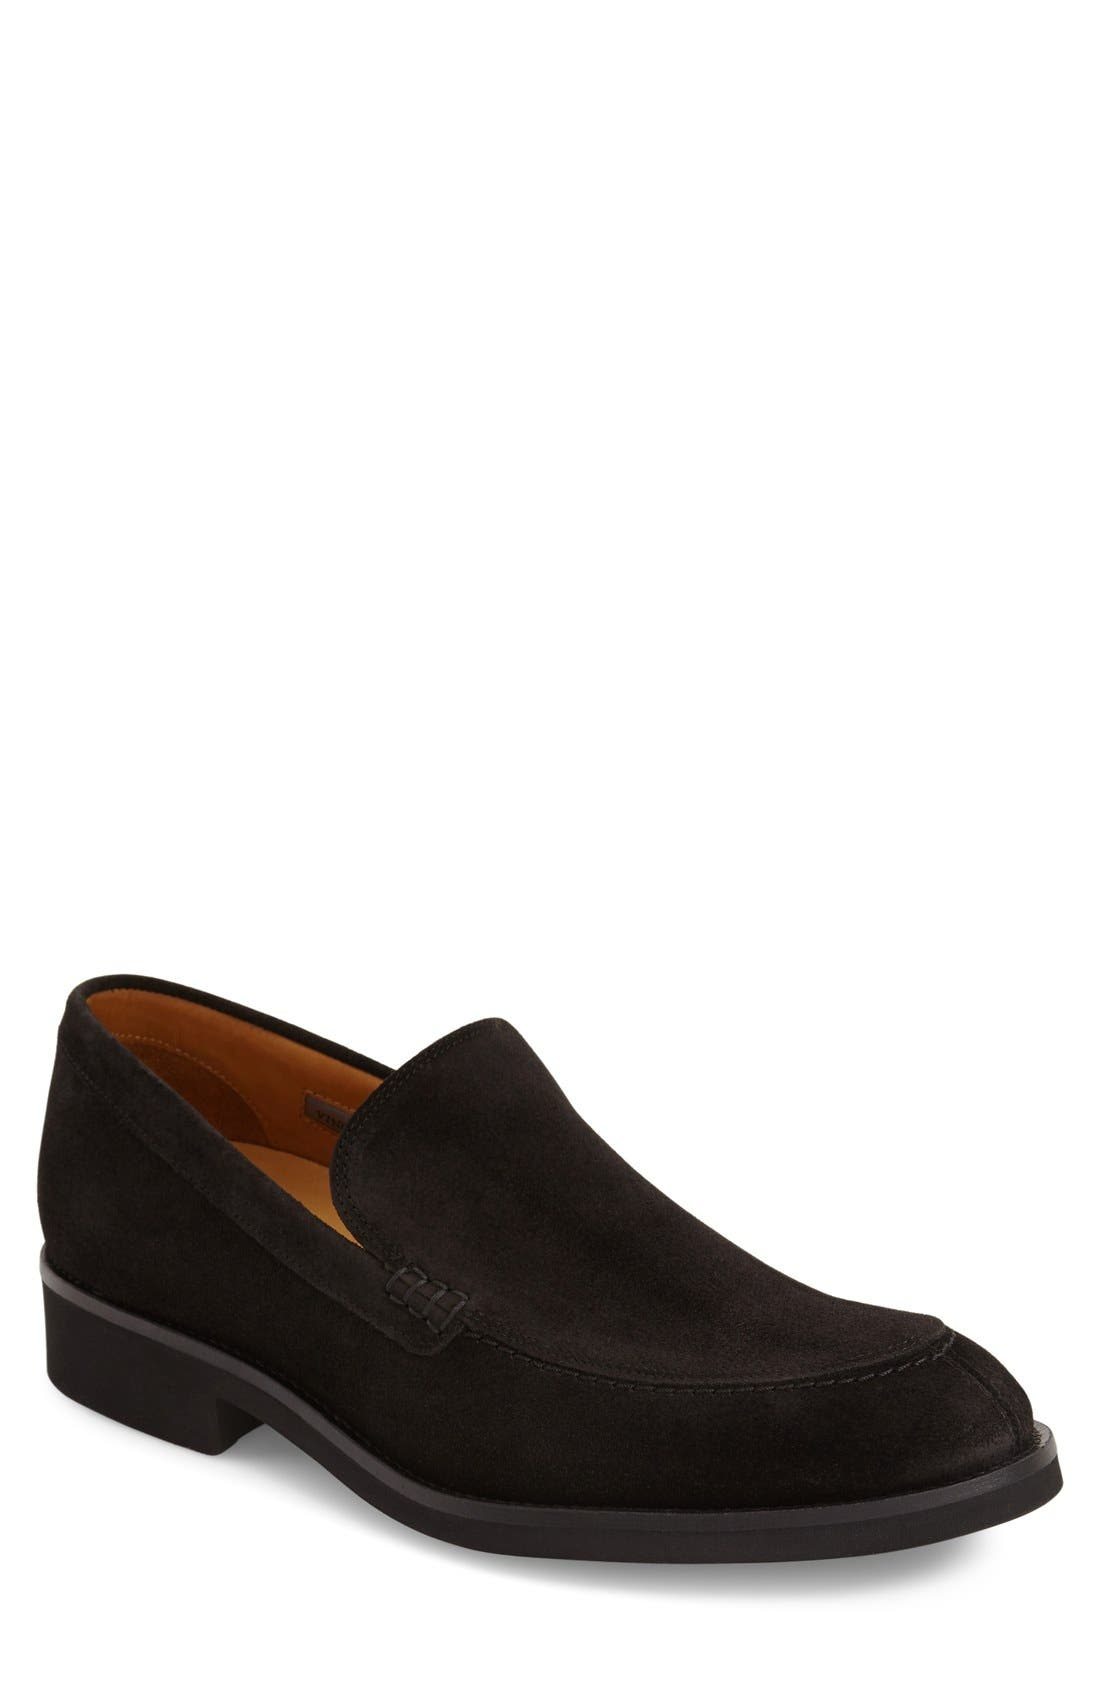 'Arleigh' Loafer,                             Main thumbnail 1, color,                             Black Suede